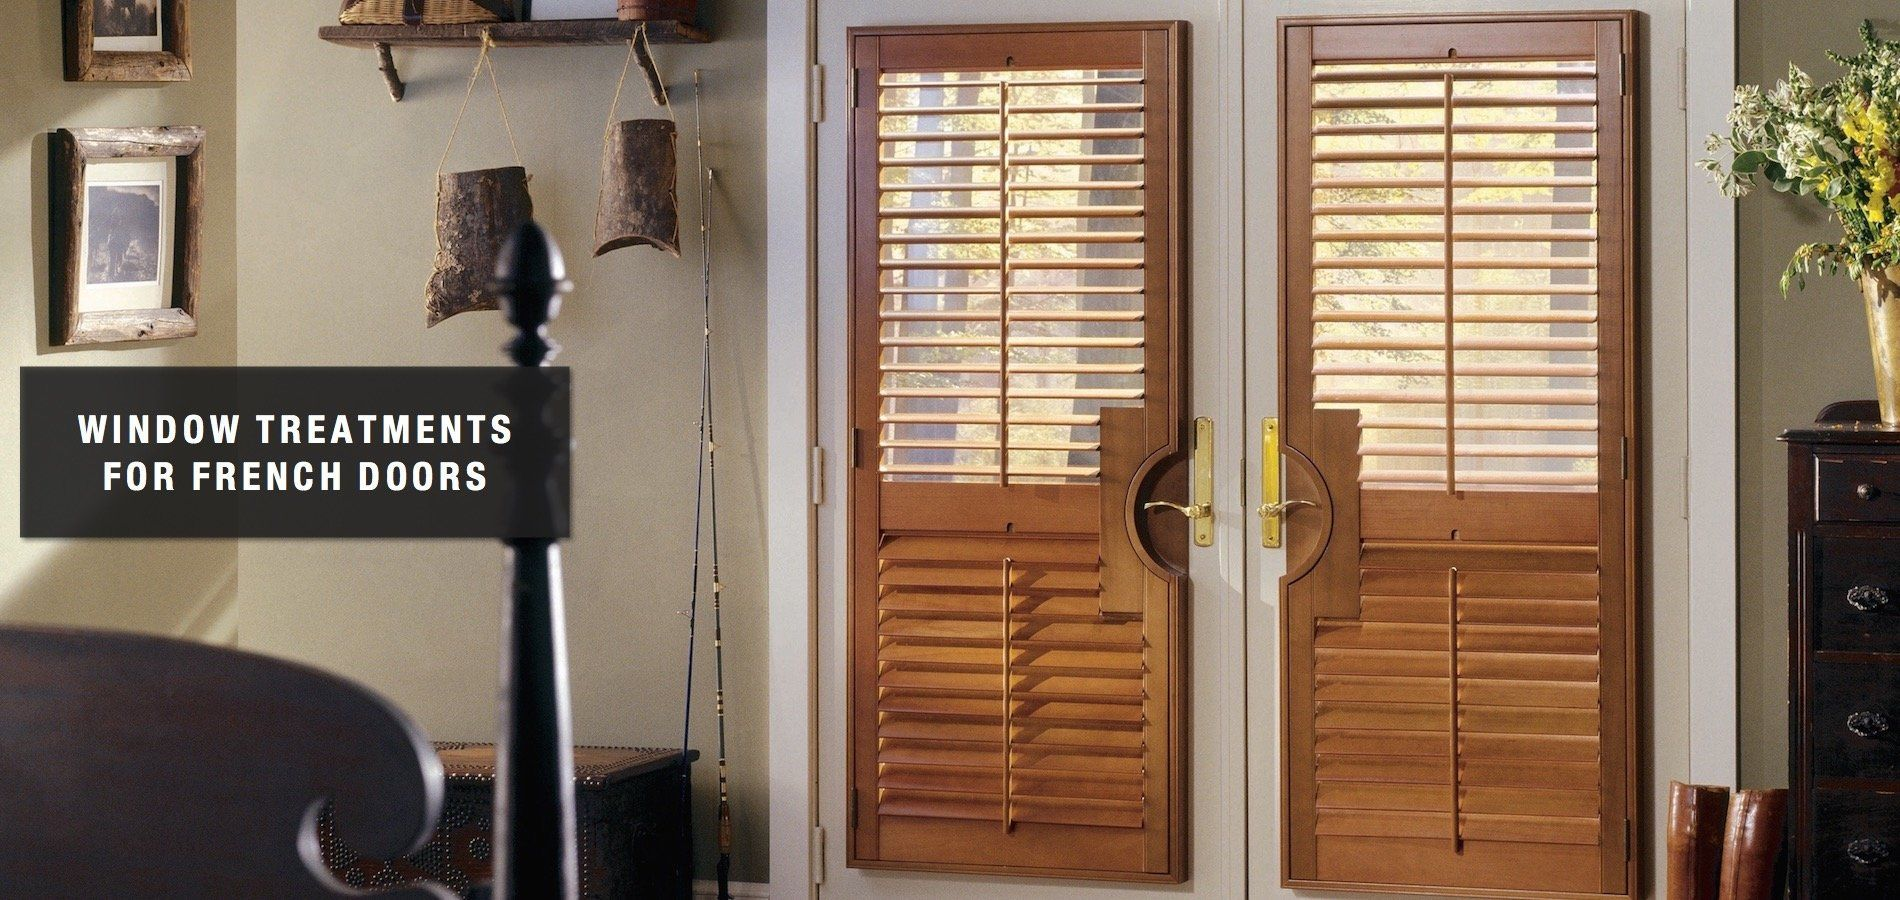 Window treatments for french doors by classic blinds u shutters